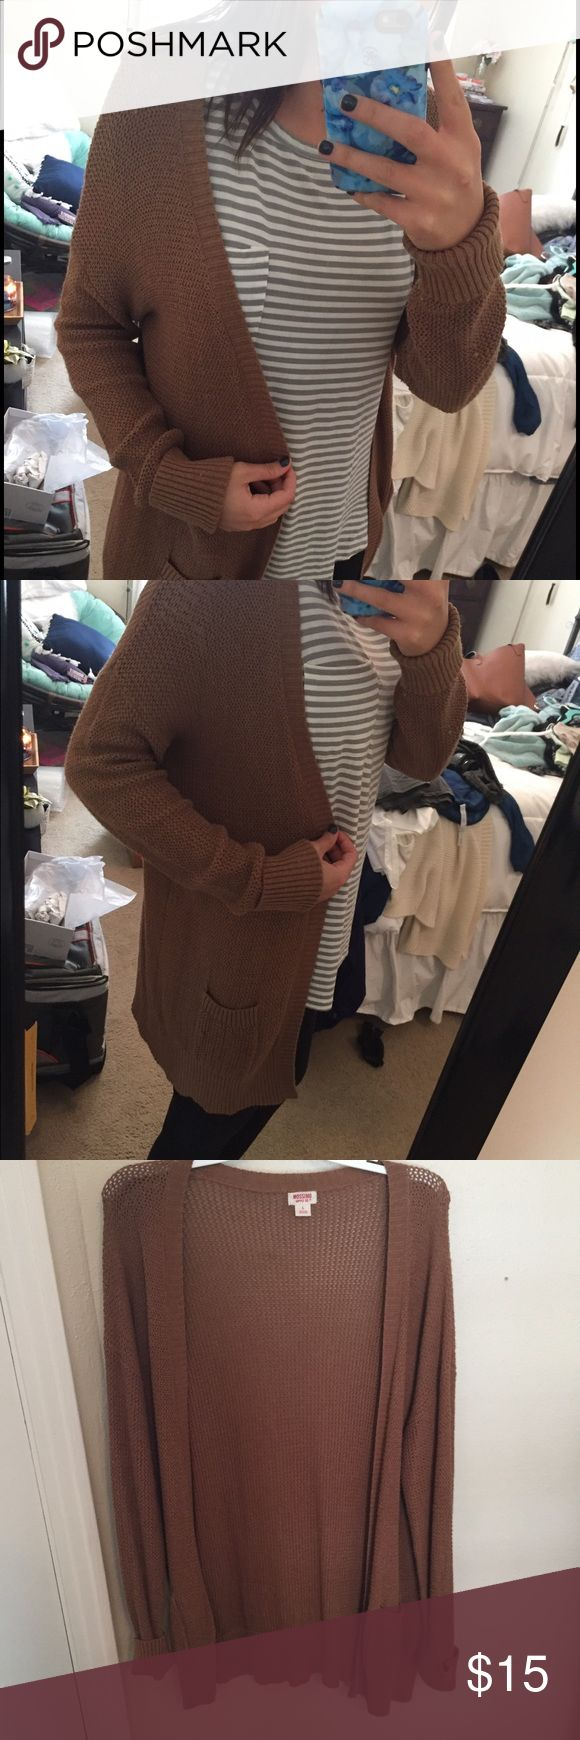 Camel Cardigan NWOT. Camel colored light cardigan with pockets. Mossimo Supply Co Sweaters Cardigans